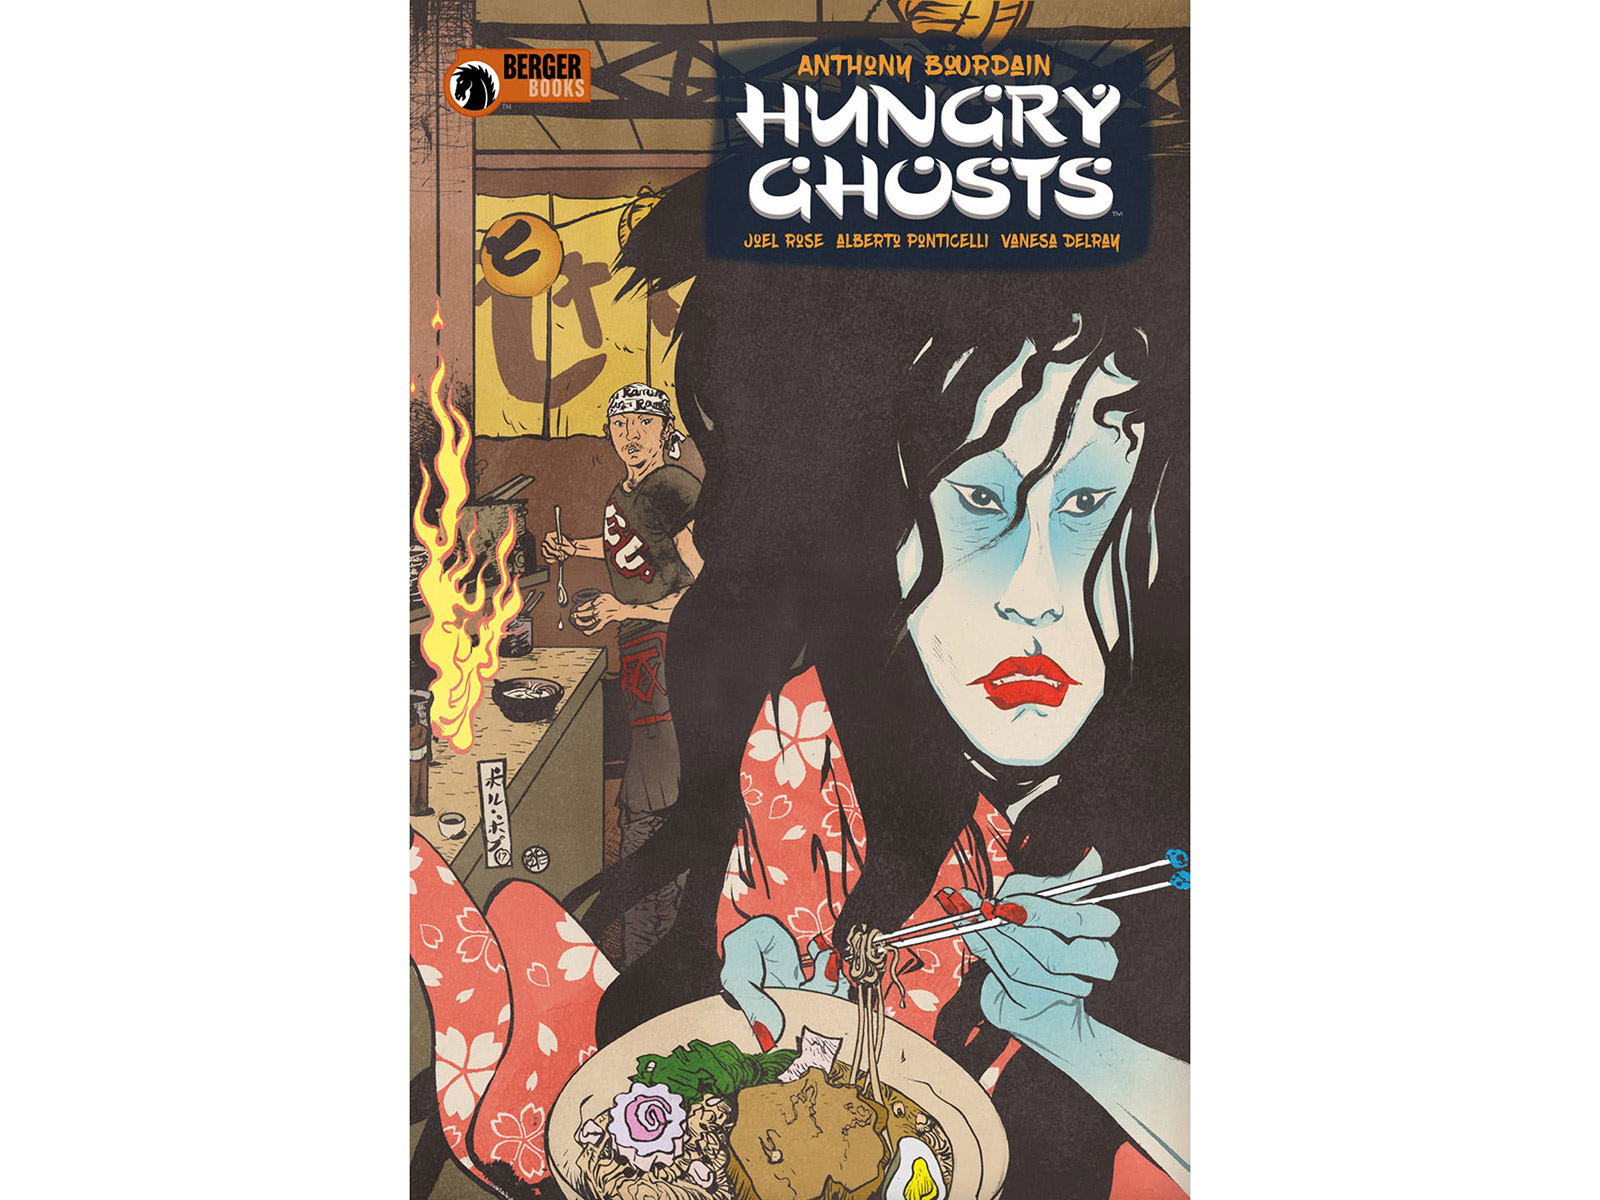 Anthony Bourdain's 'Hungry Ghosts' Graphic Novels in Development as TV Series